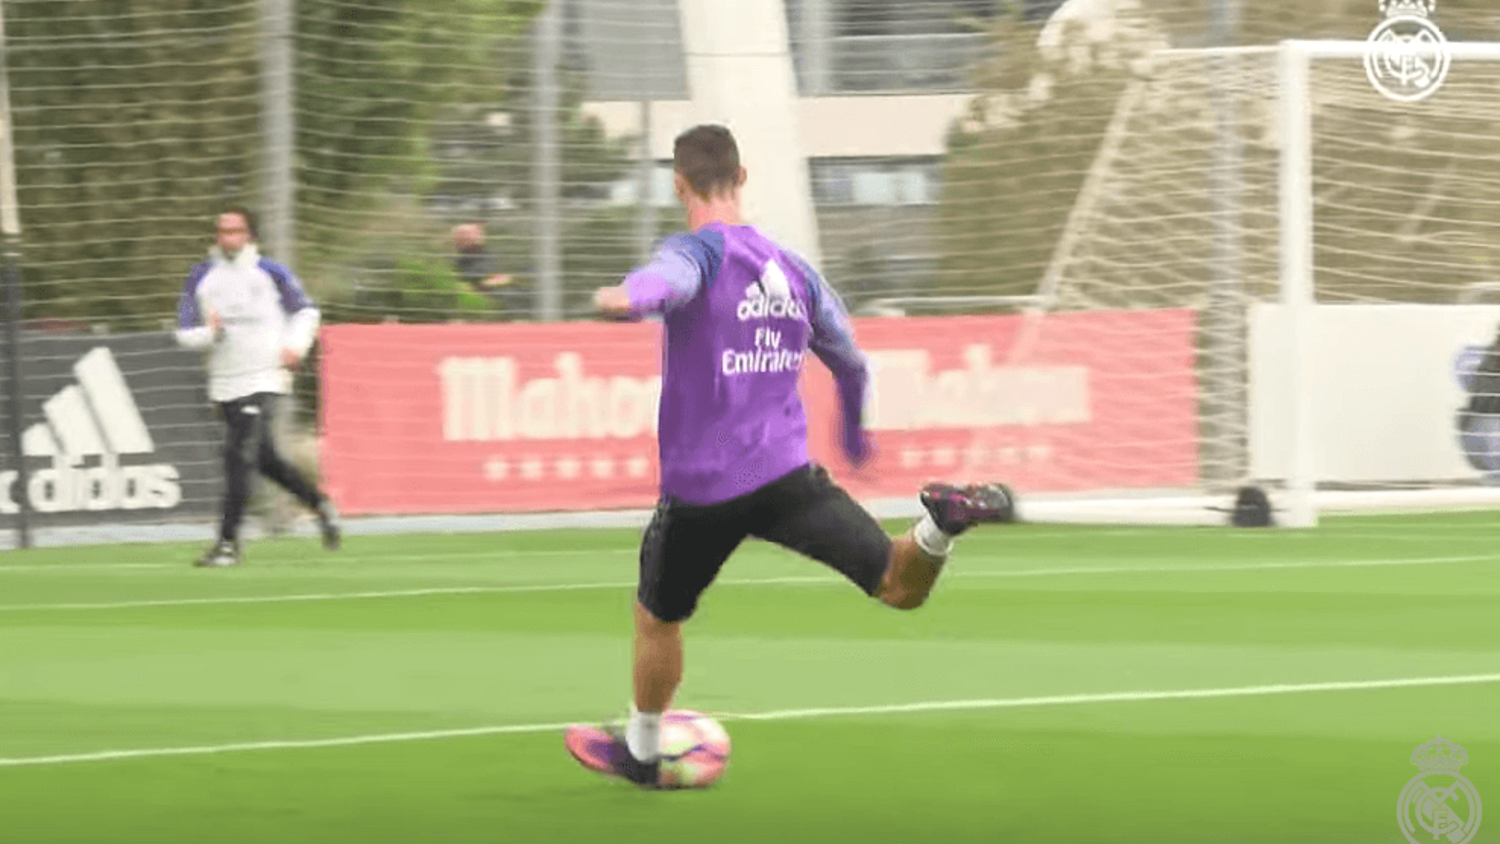 Impressive Real Madrid Training with Ronaldo, Bale & Keylor Navas